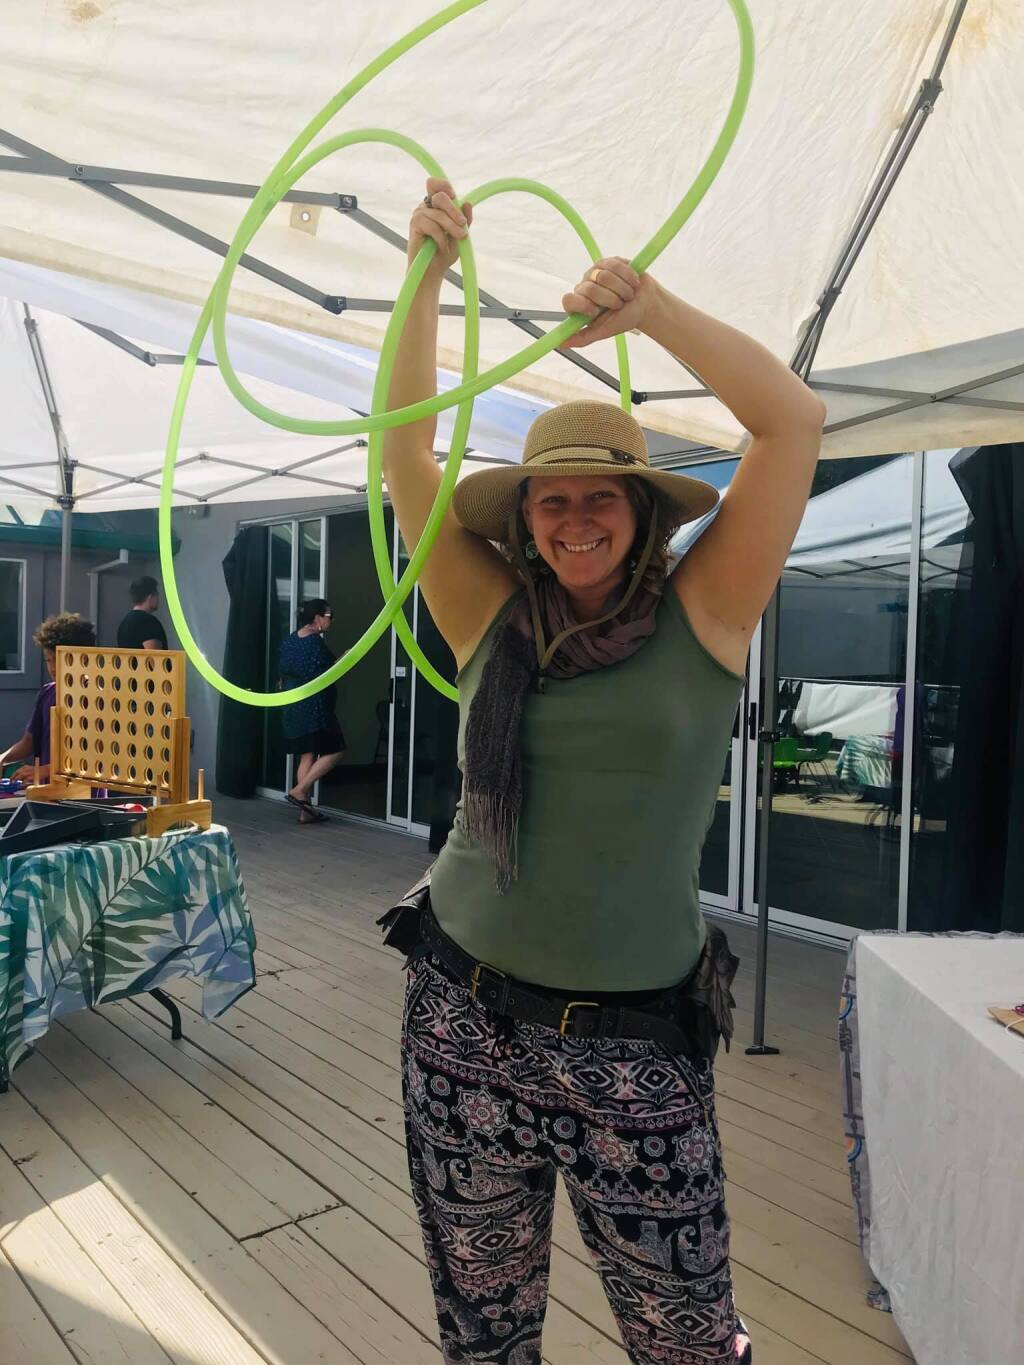 Kat Cortwright participates in the Peacetown Family Village in 2019